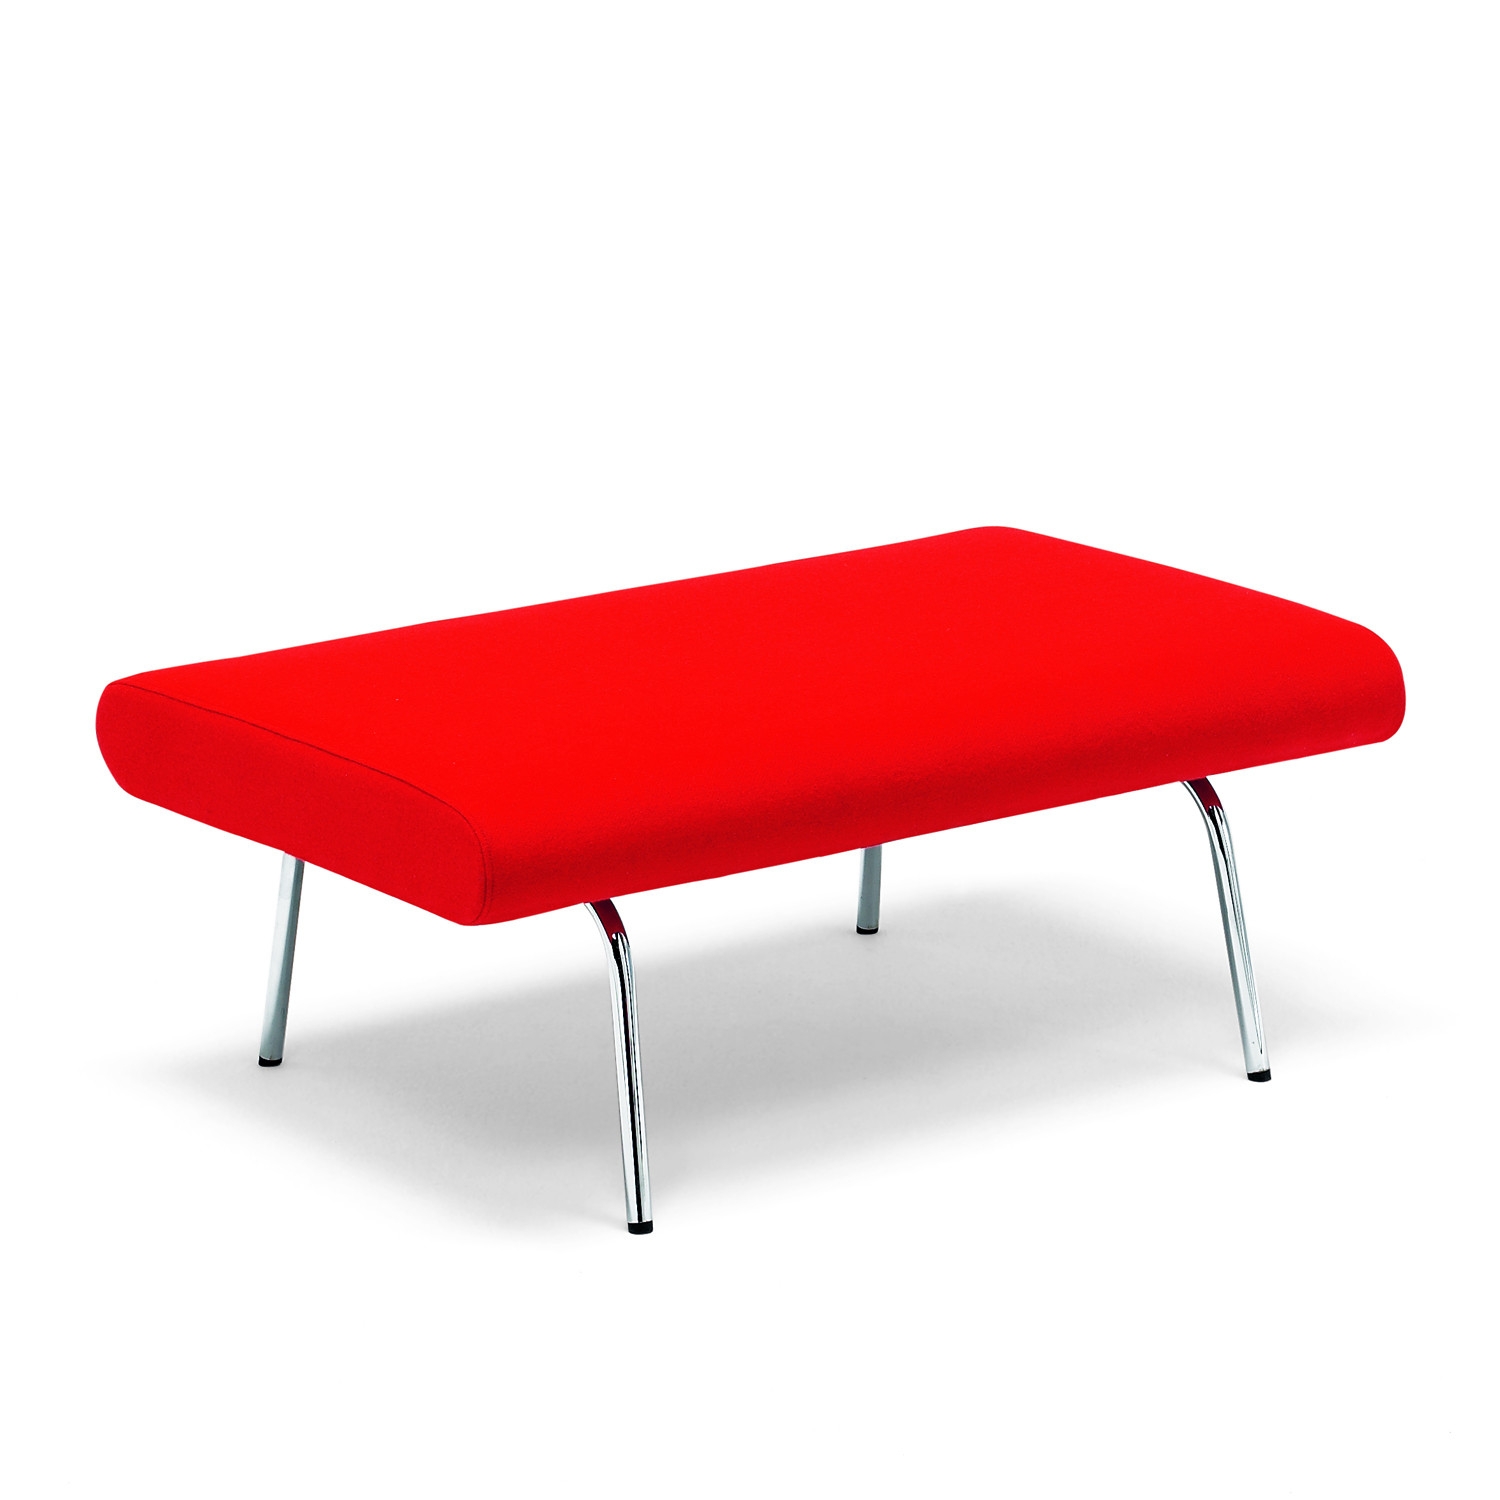 Orbit Sofa by Offecct